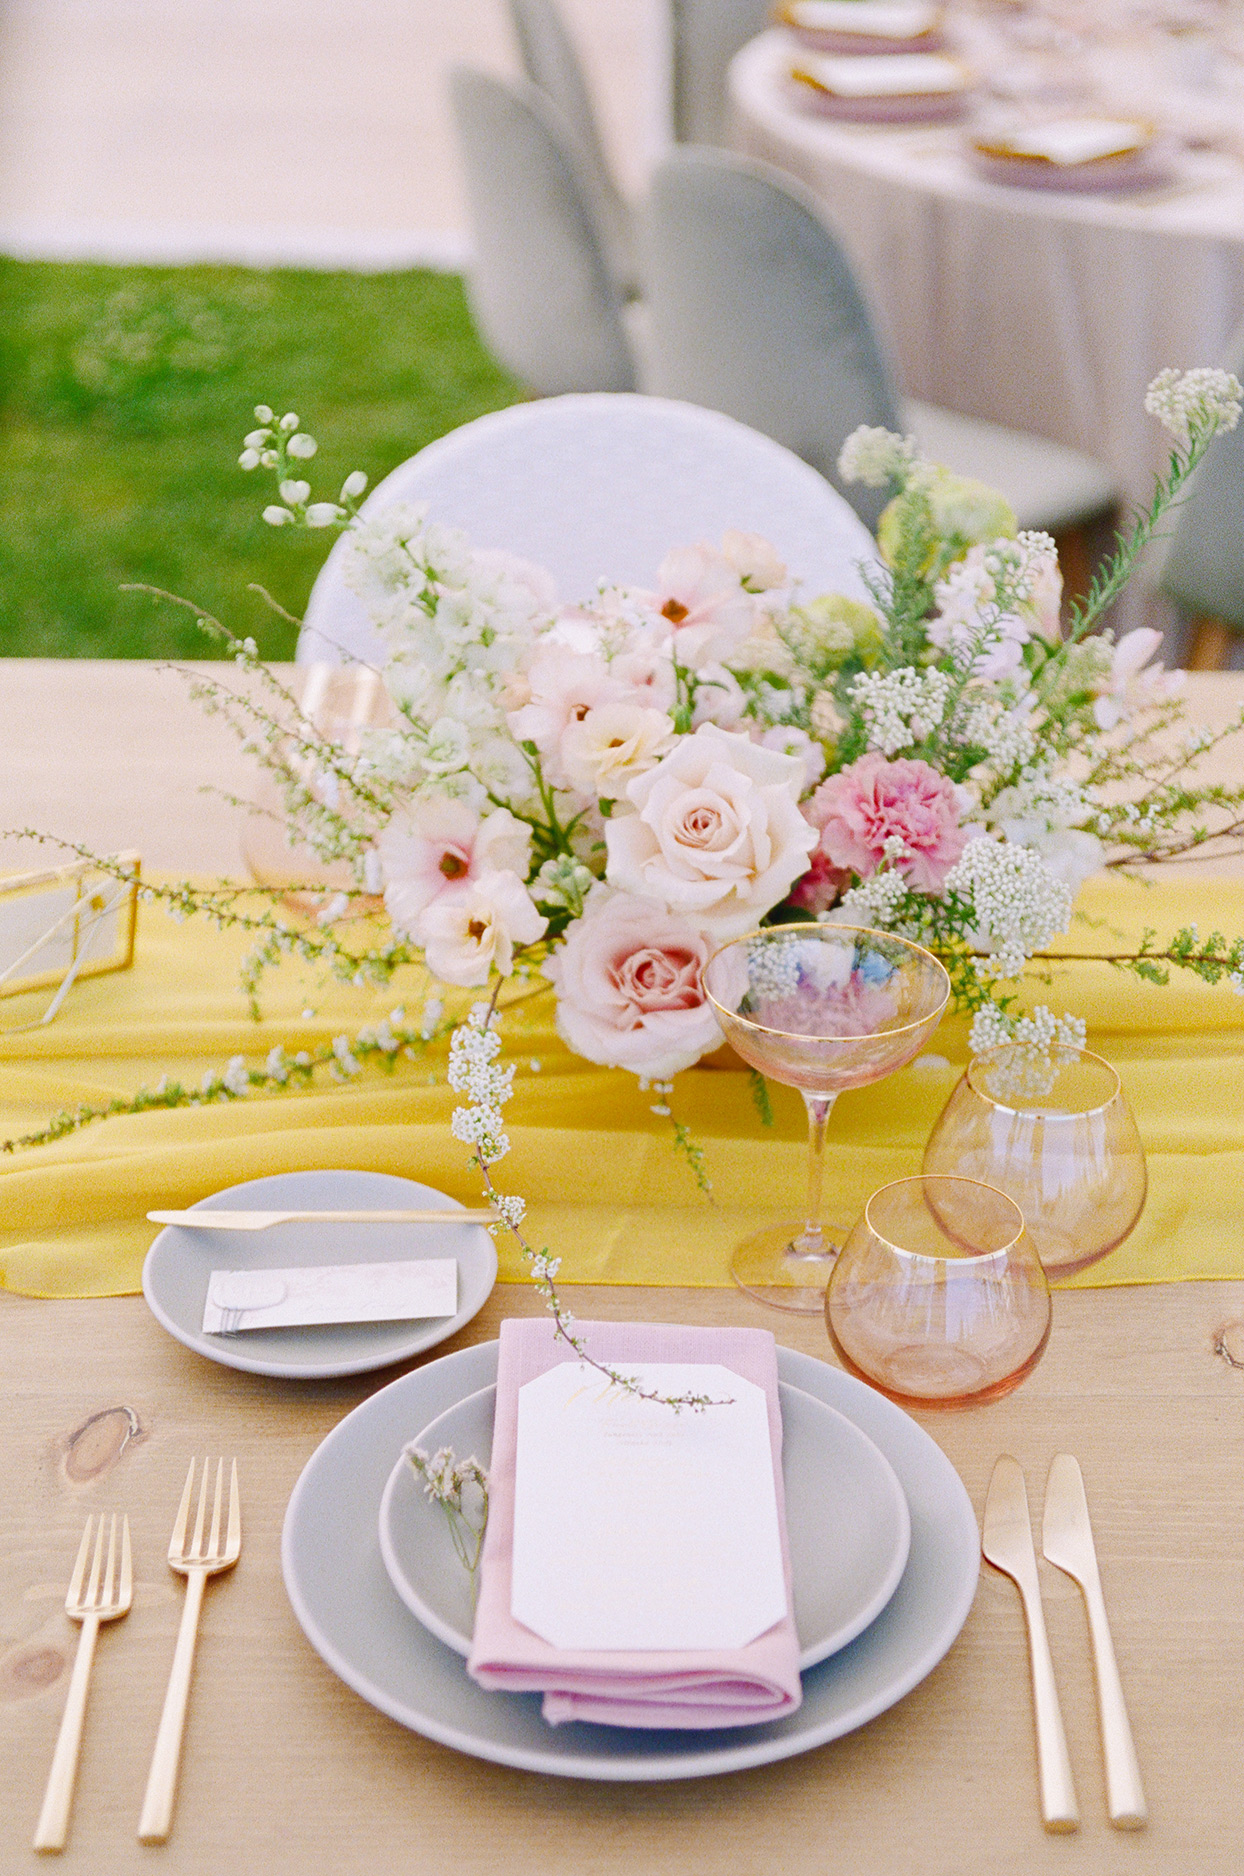 wedding place settings with lilac plates with gold flatware and blush-colored glassware